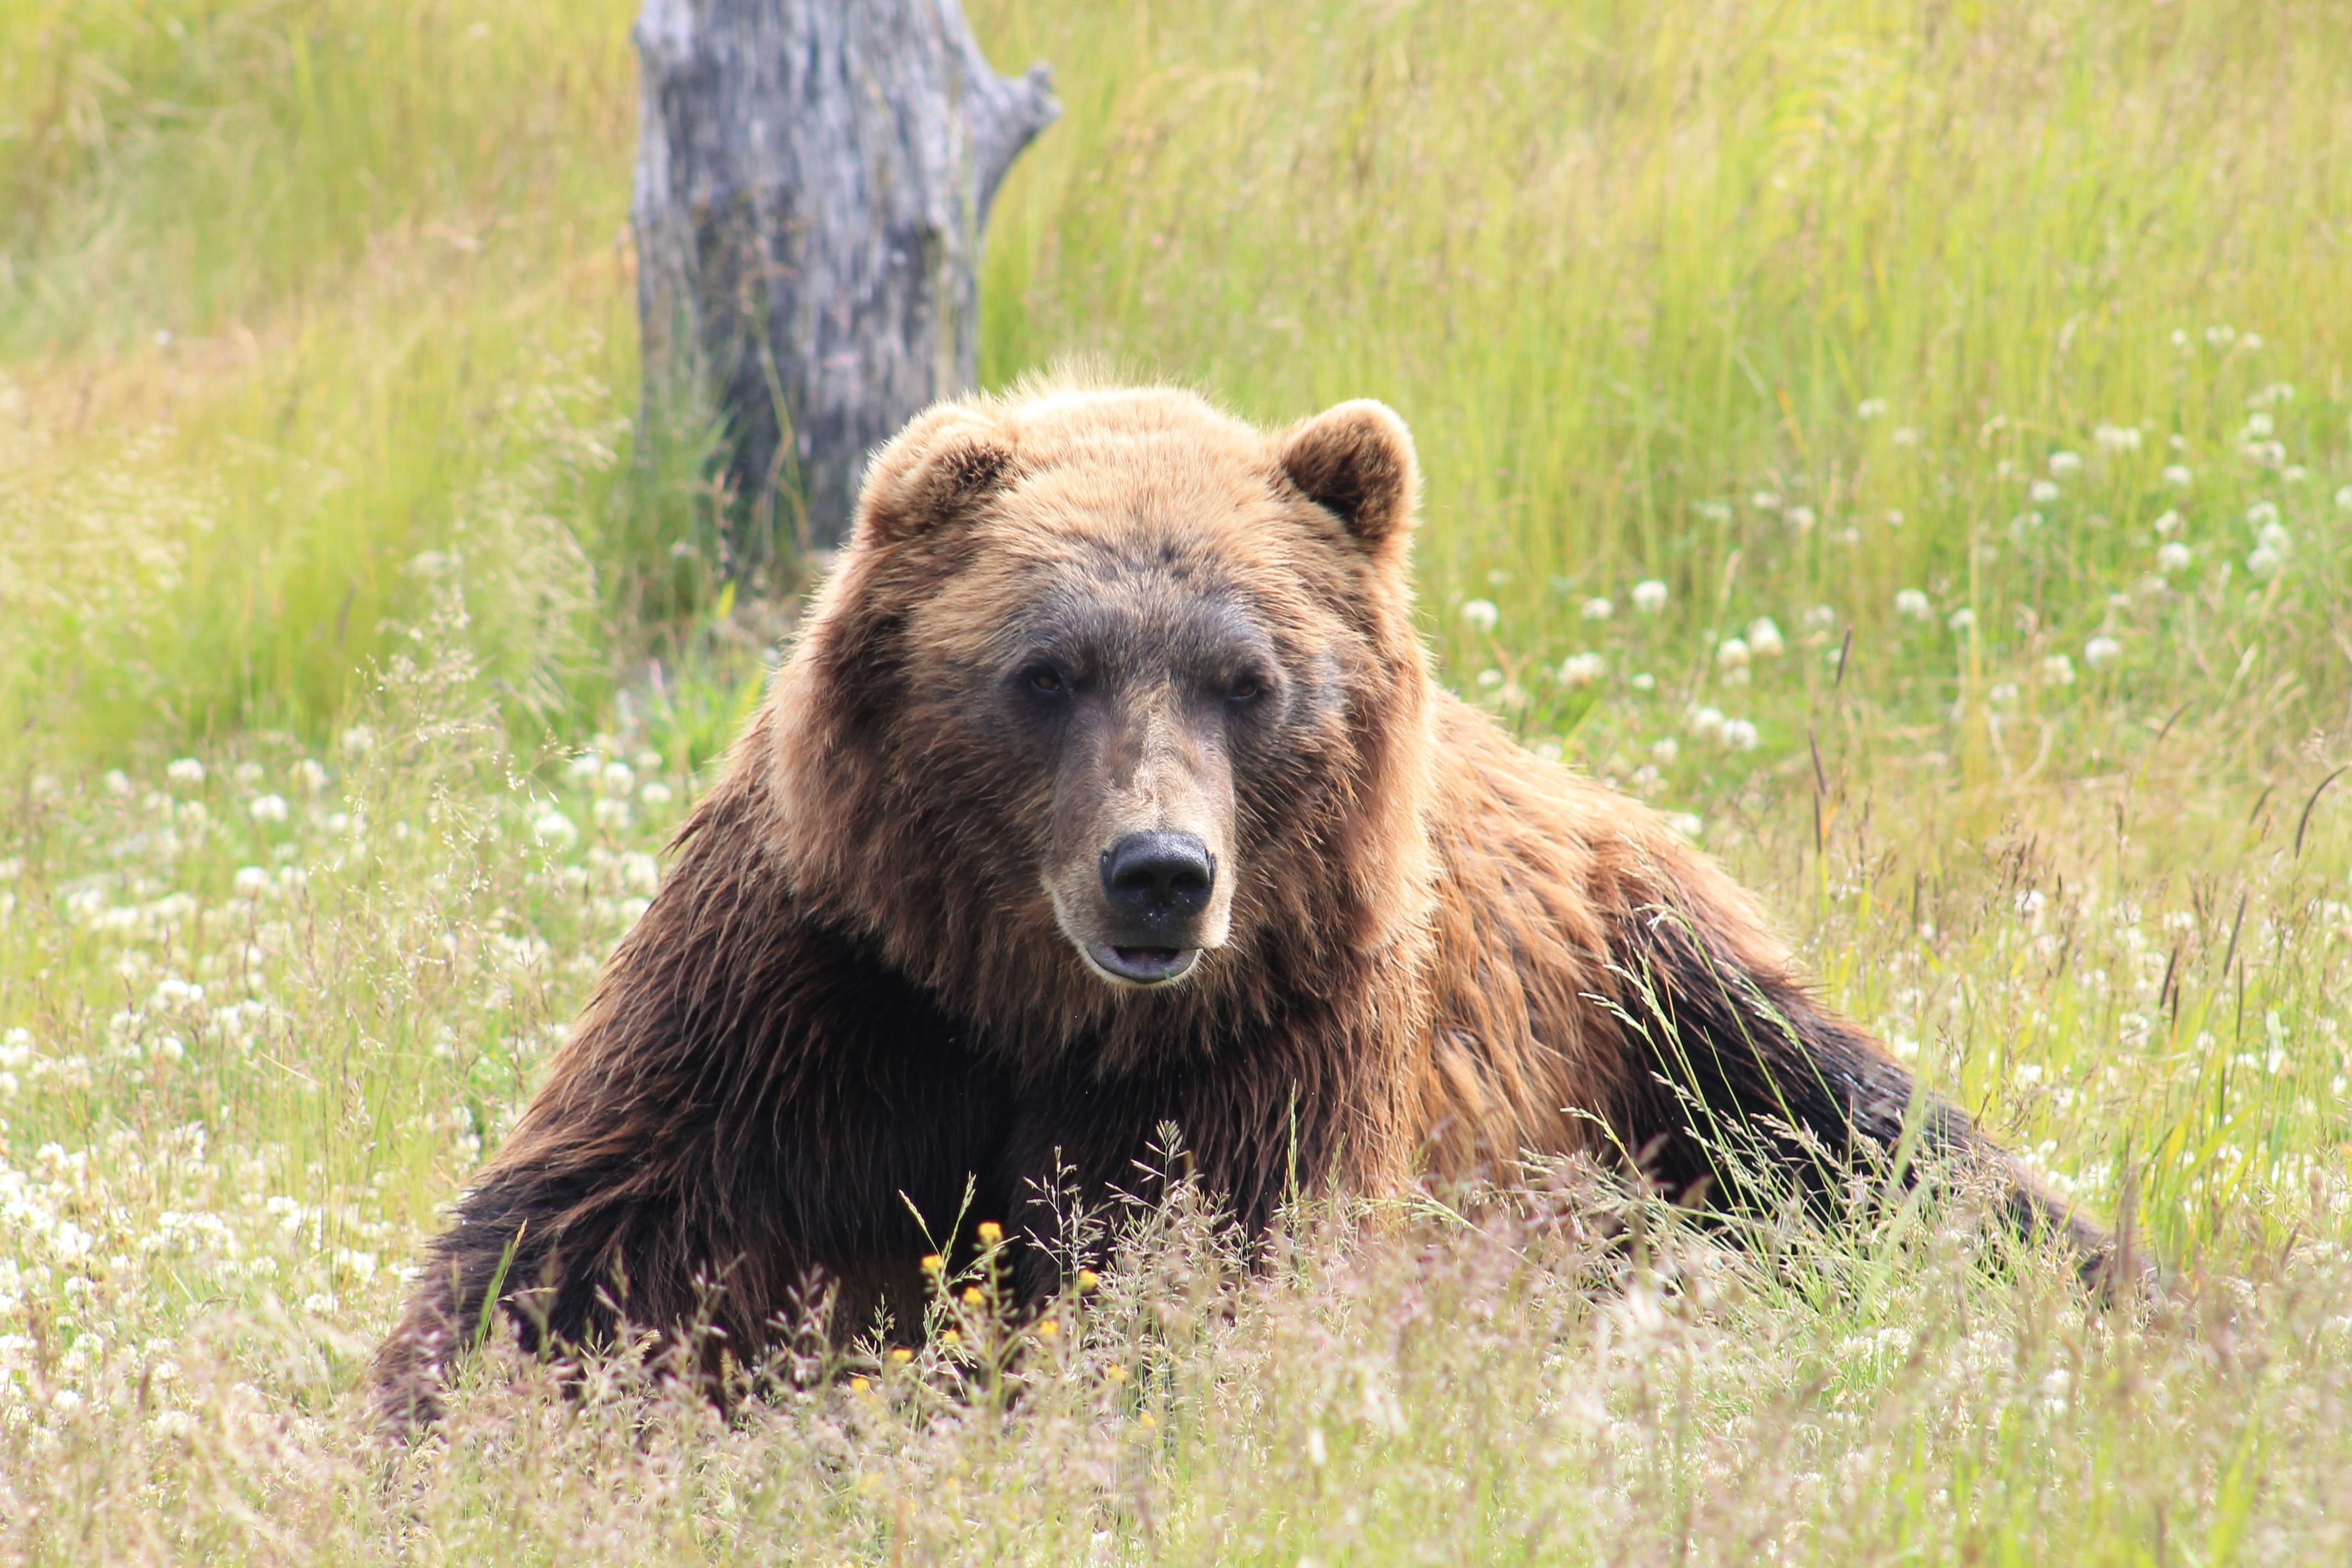 brown bear lying on grass field during daytime